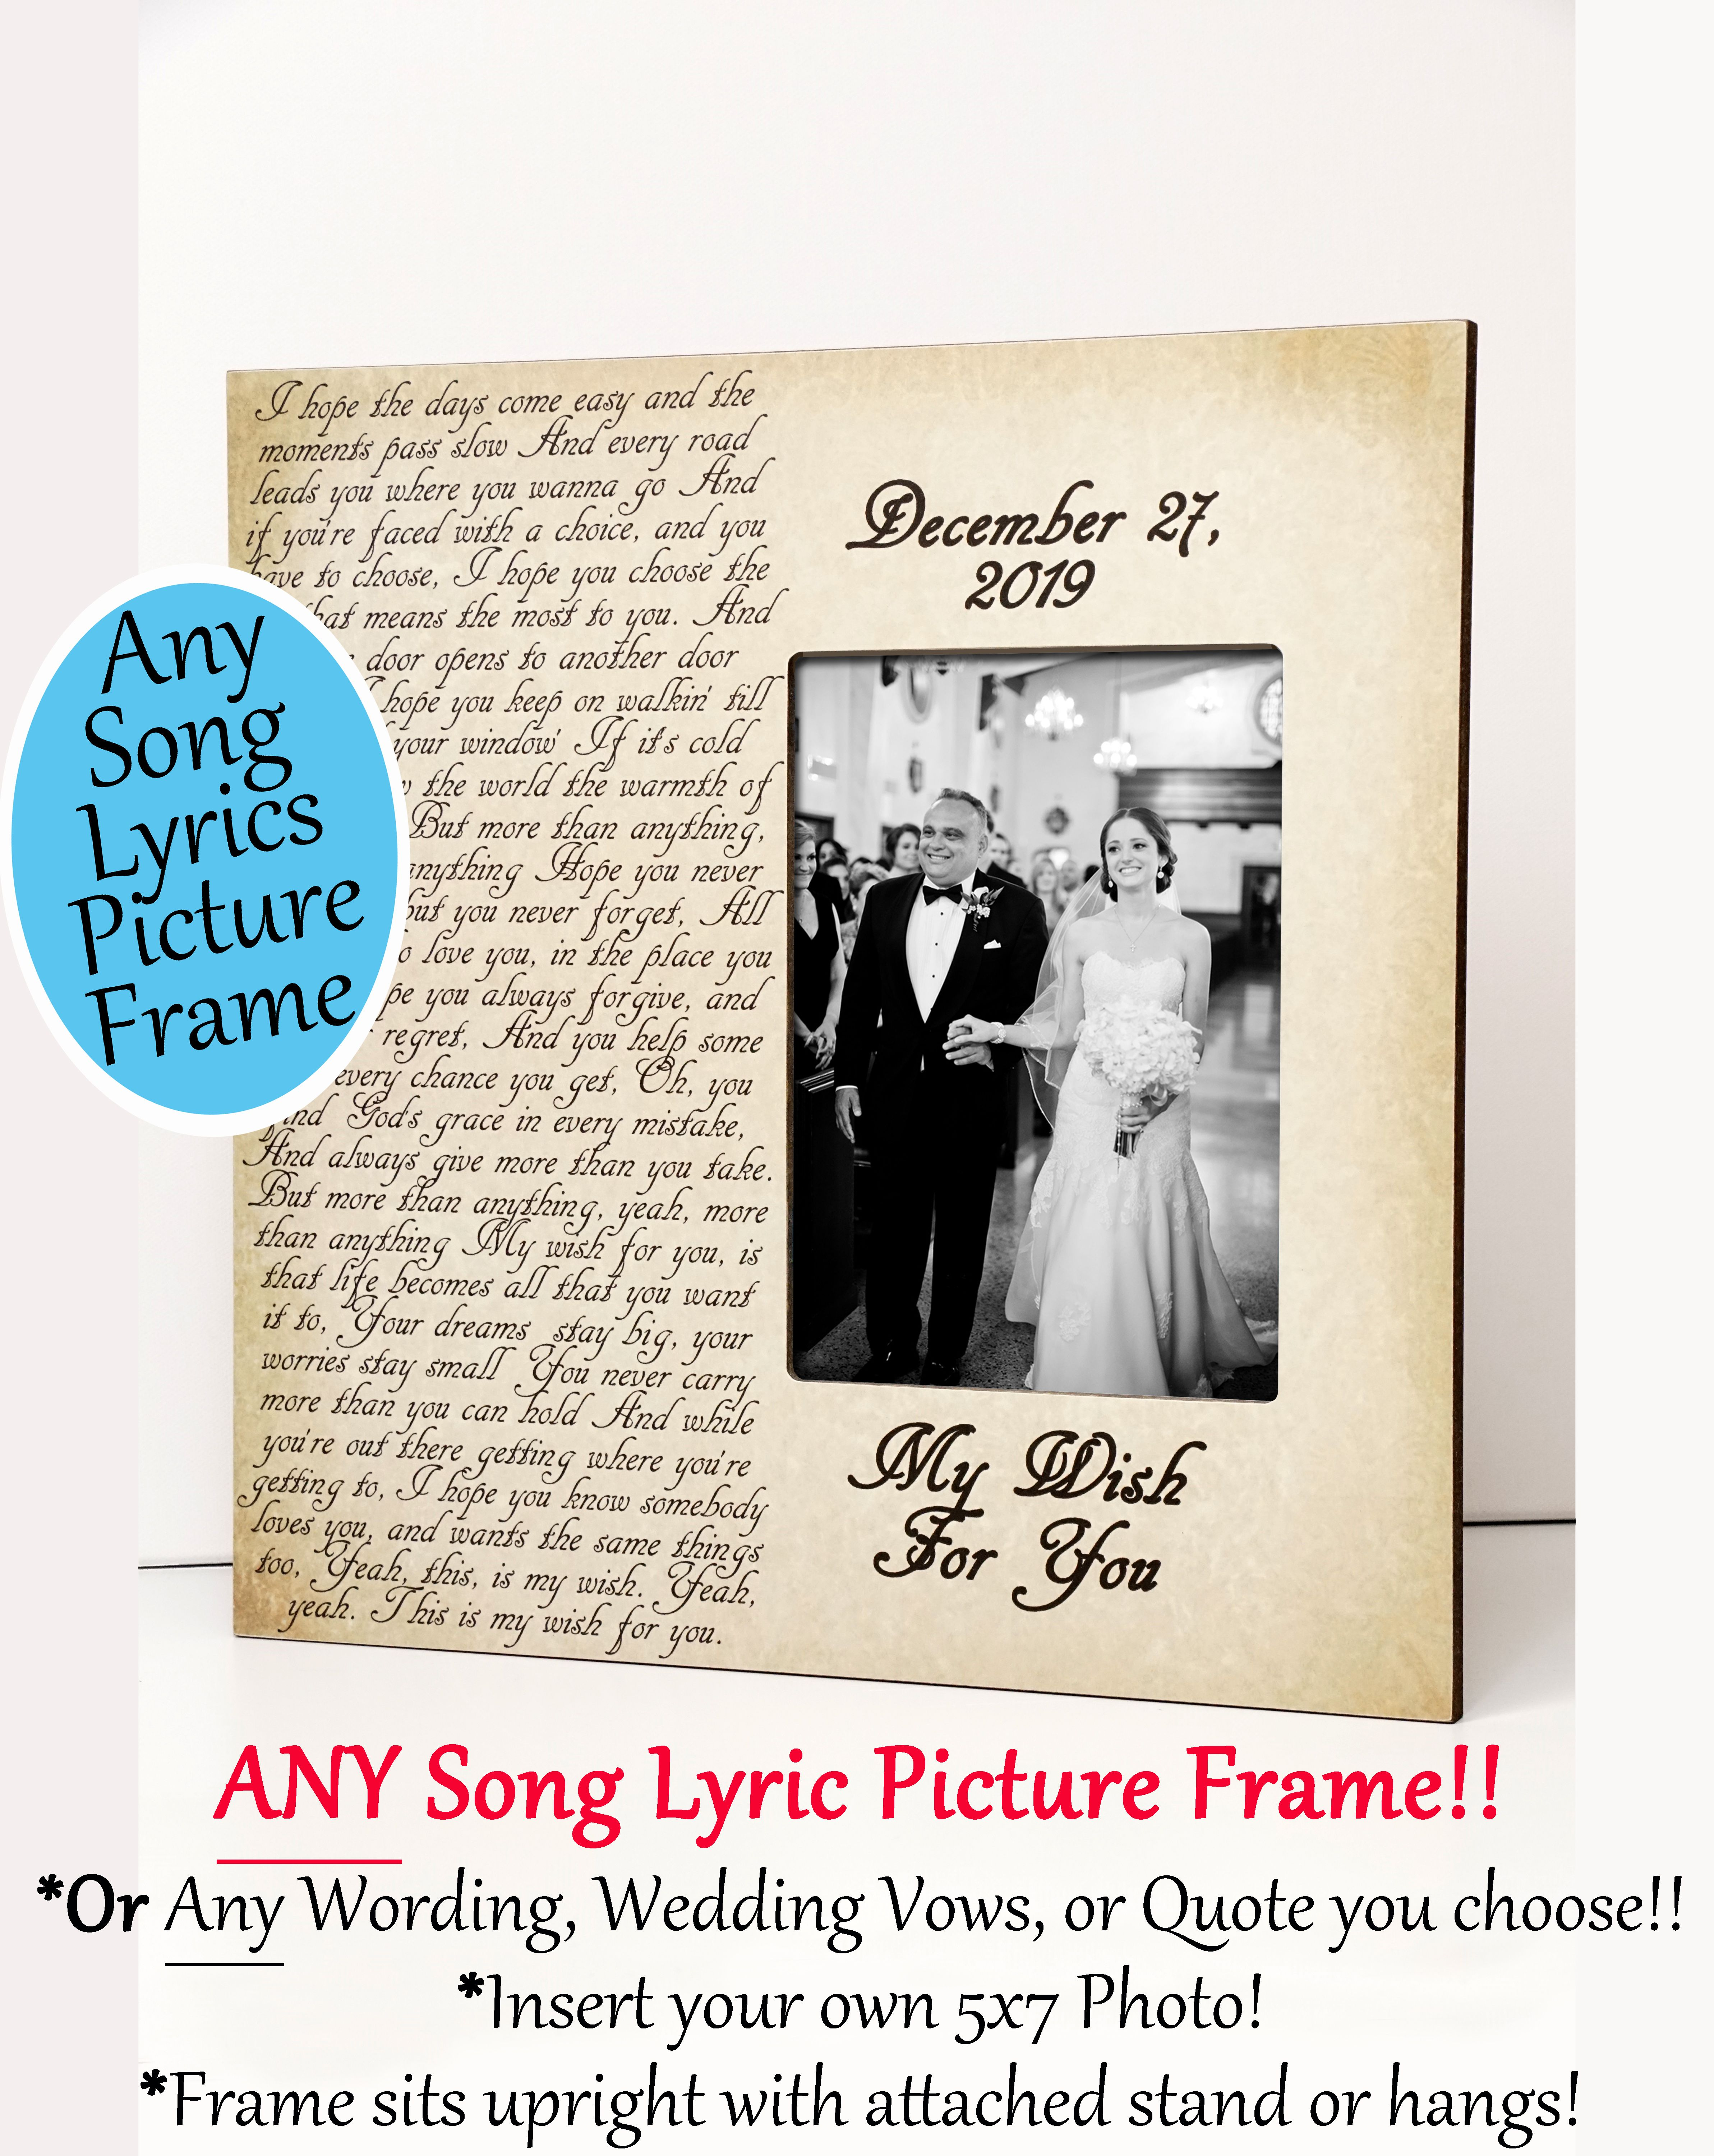 Silver Locket Picture Frame Couples Picture Frame Childrens School Pictures Frames for Gifting Christmas Frame engraved yr 2008 Wedding Gift